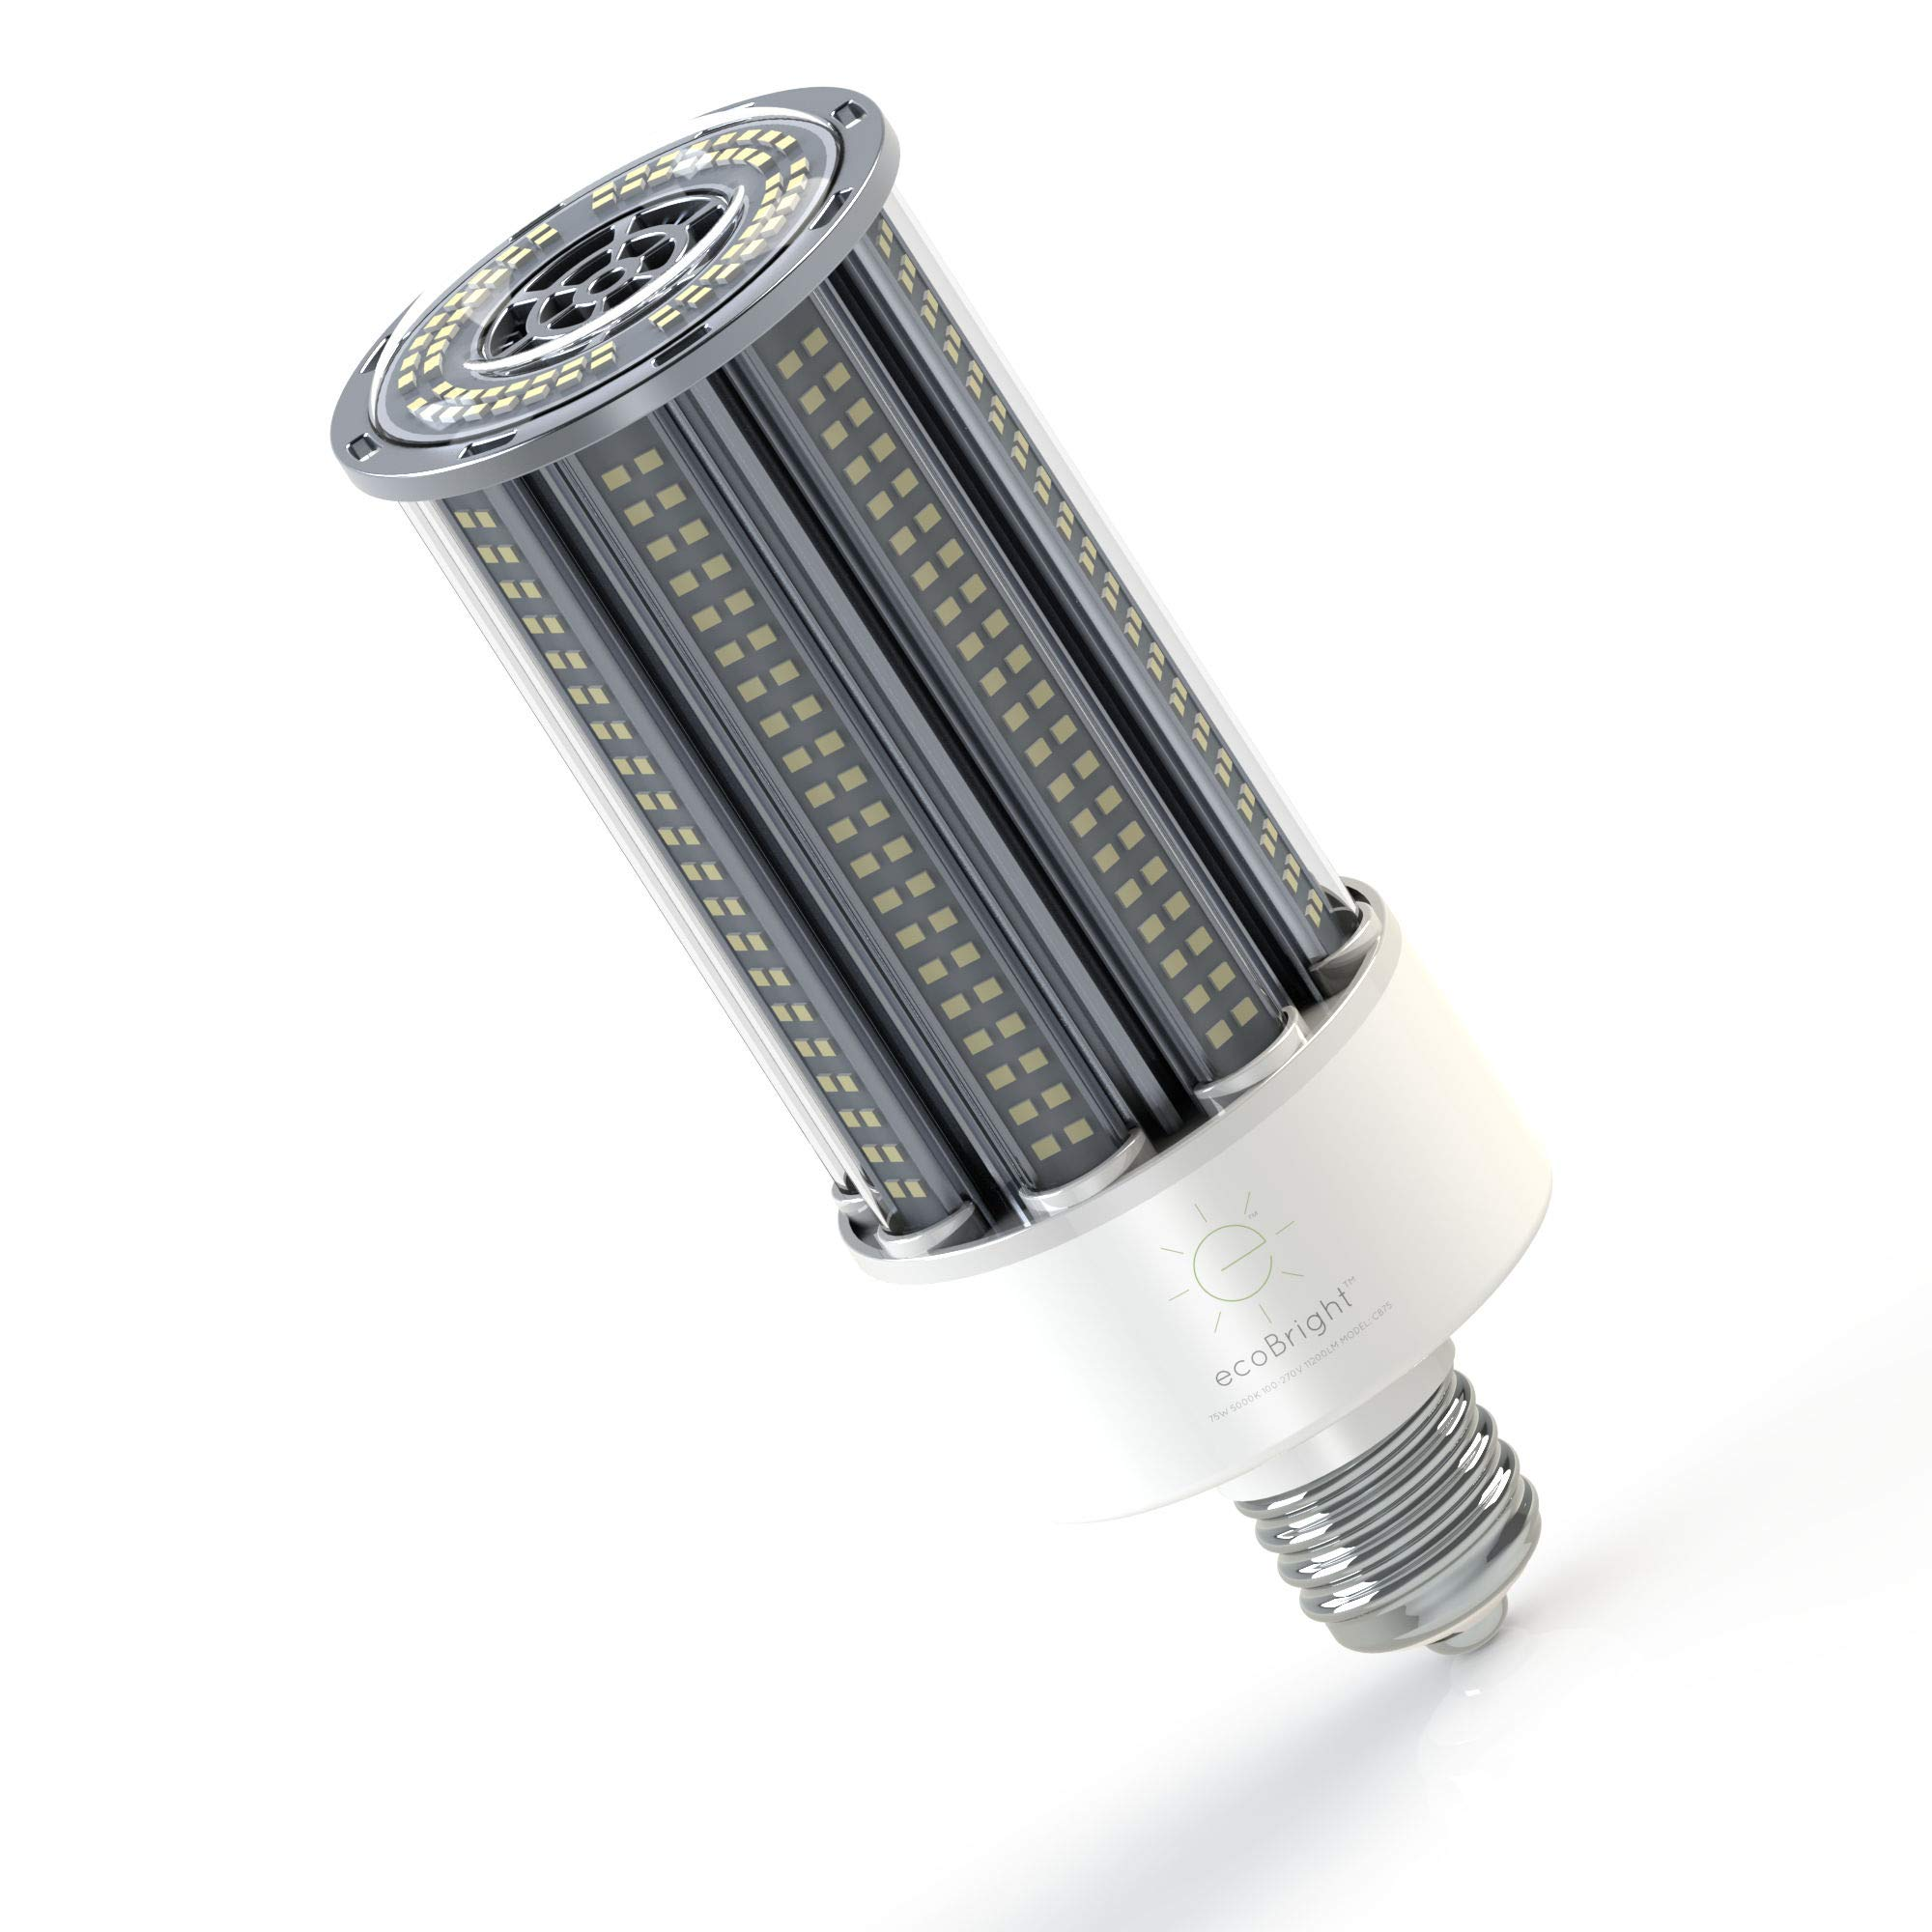 ecoBright LED Corn Bulb 54W (5000K 8100LM E39/E40 Mogul), 350W Replacement, street lighthing, area lighting. by ecoBright